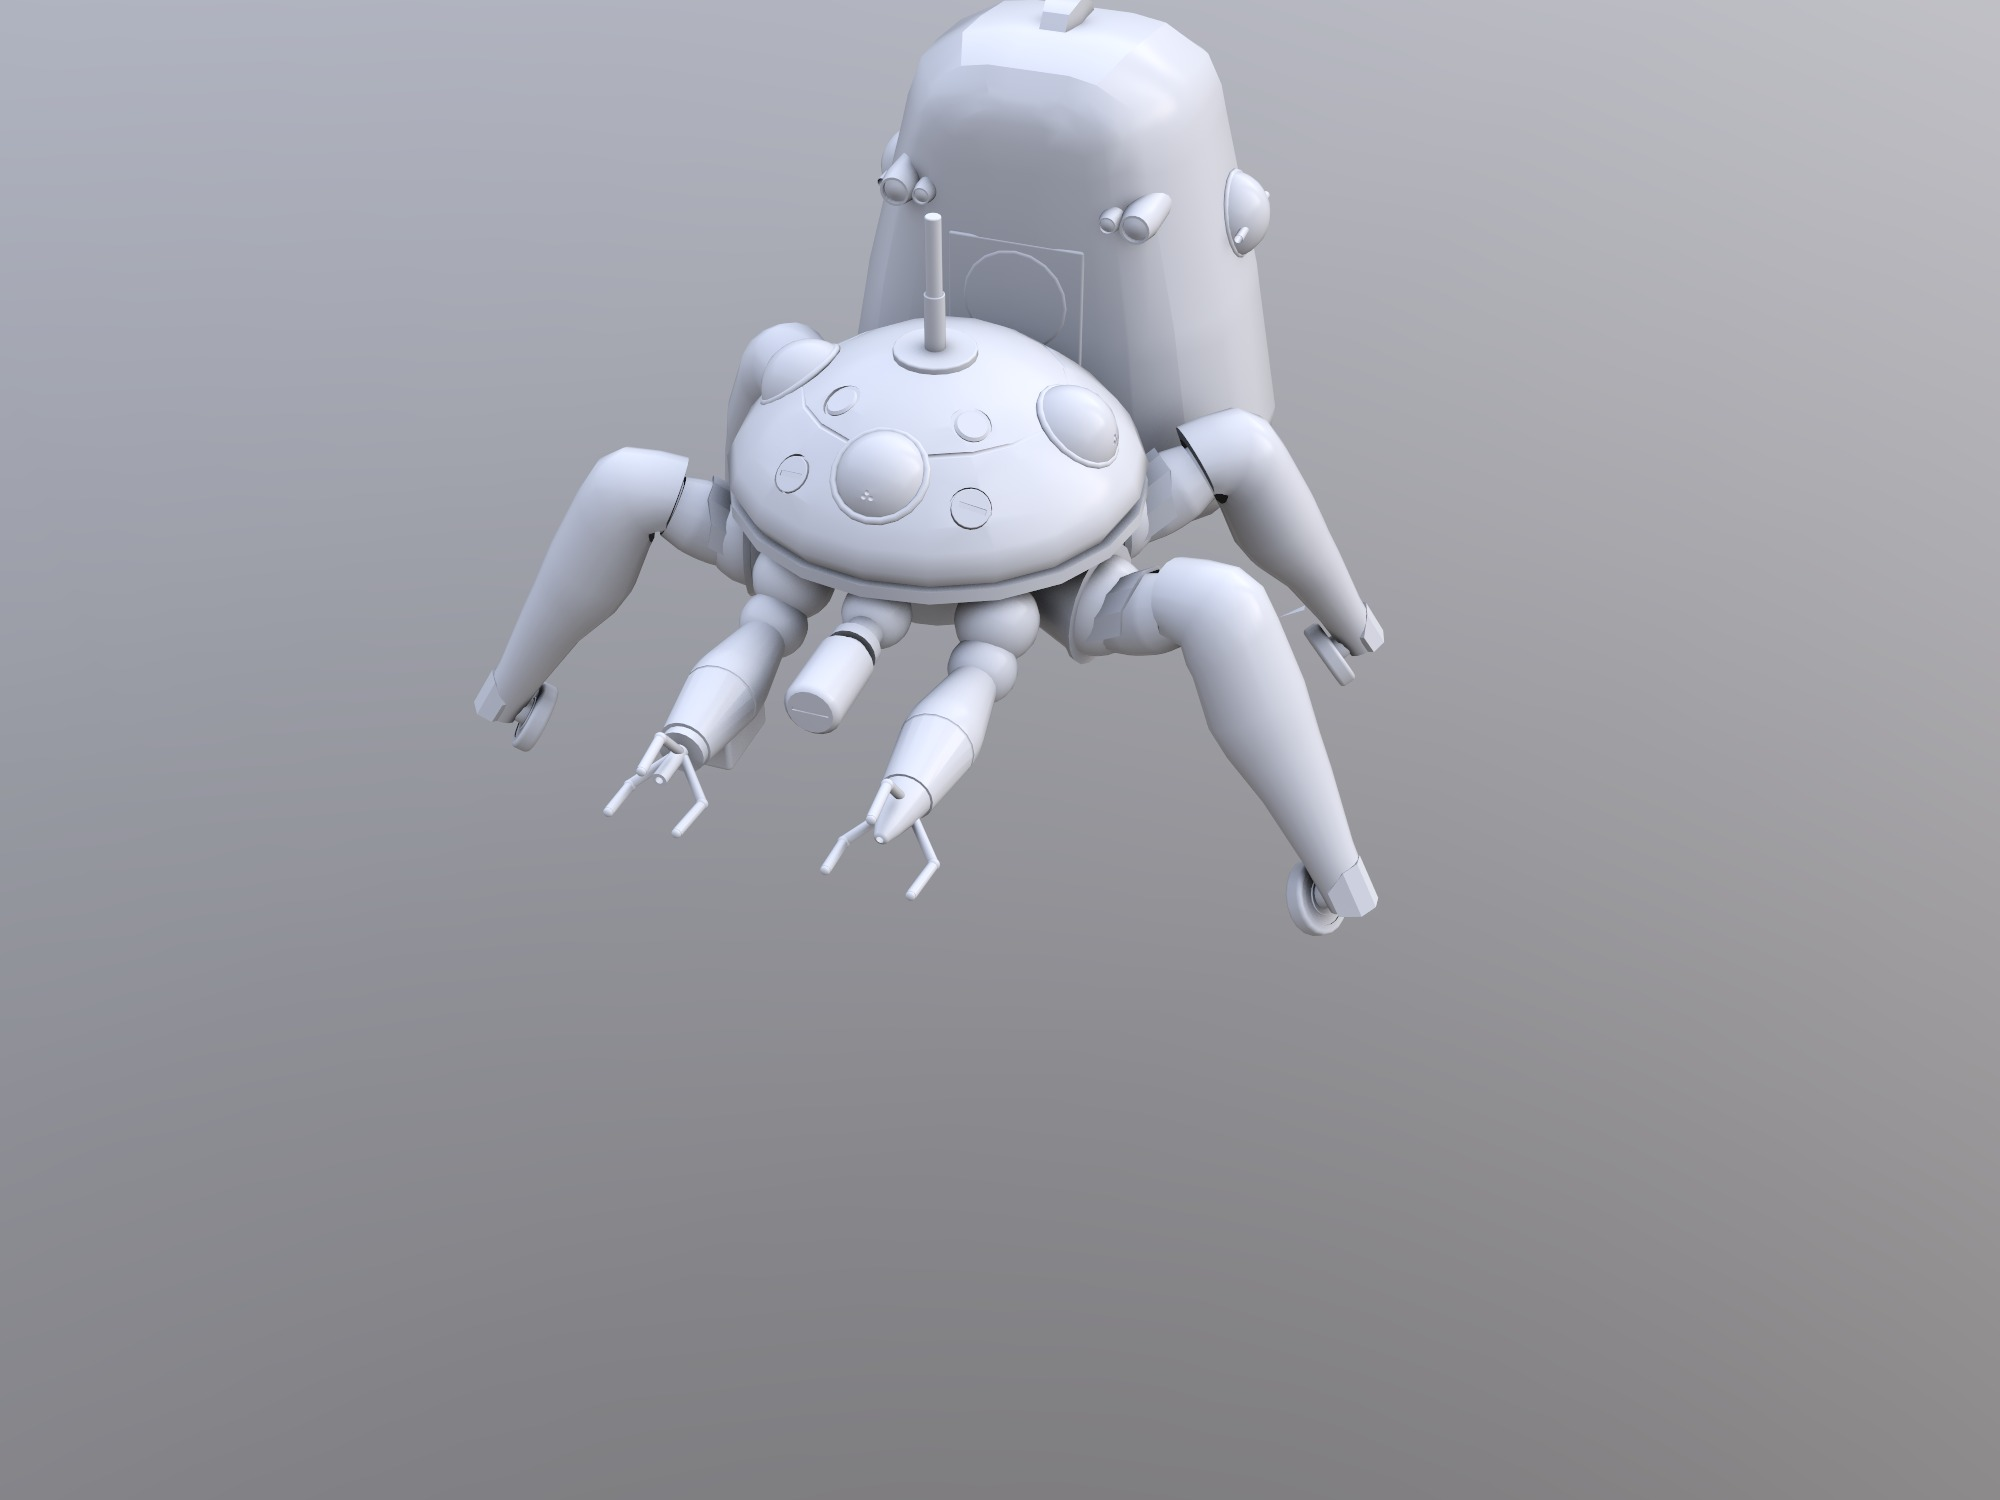 Tachikoma - 3D design by Keith Winters on Dec 13, 2018